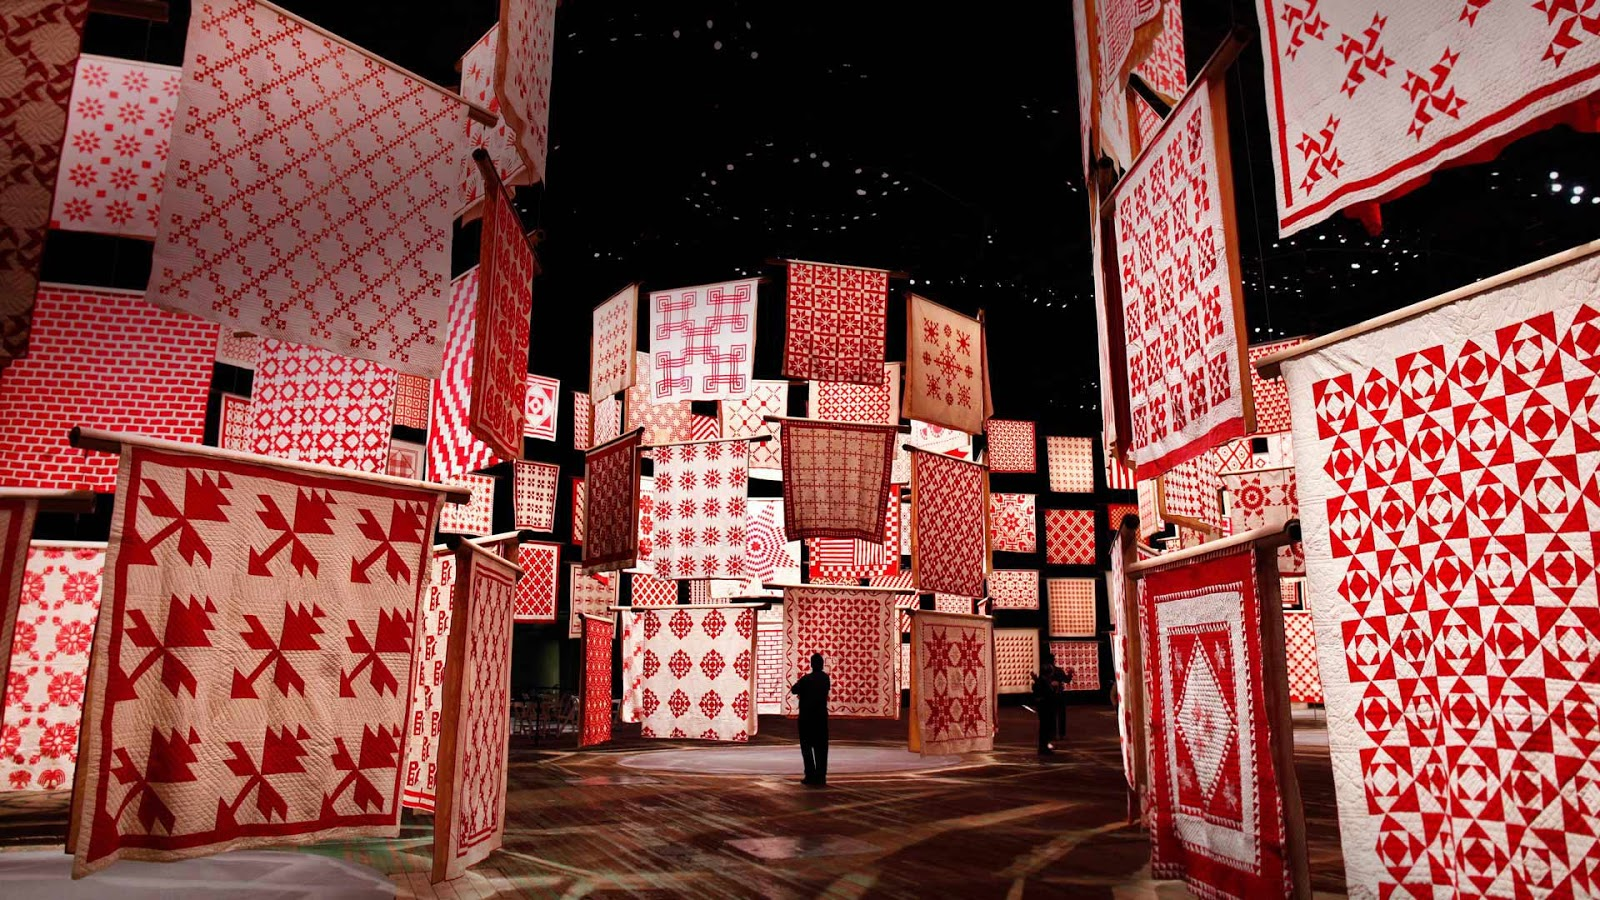 Three Centuries of Red and White Quilts at the American Folk Art Museum in New York City in 2011, for National Quilting Day © Shannon Stapleton/Reuters